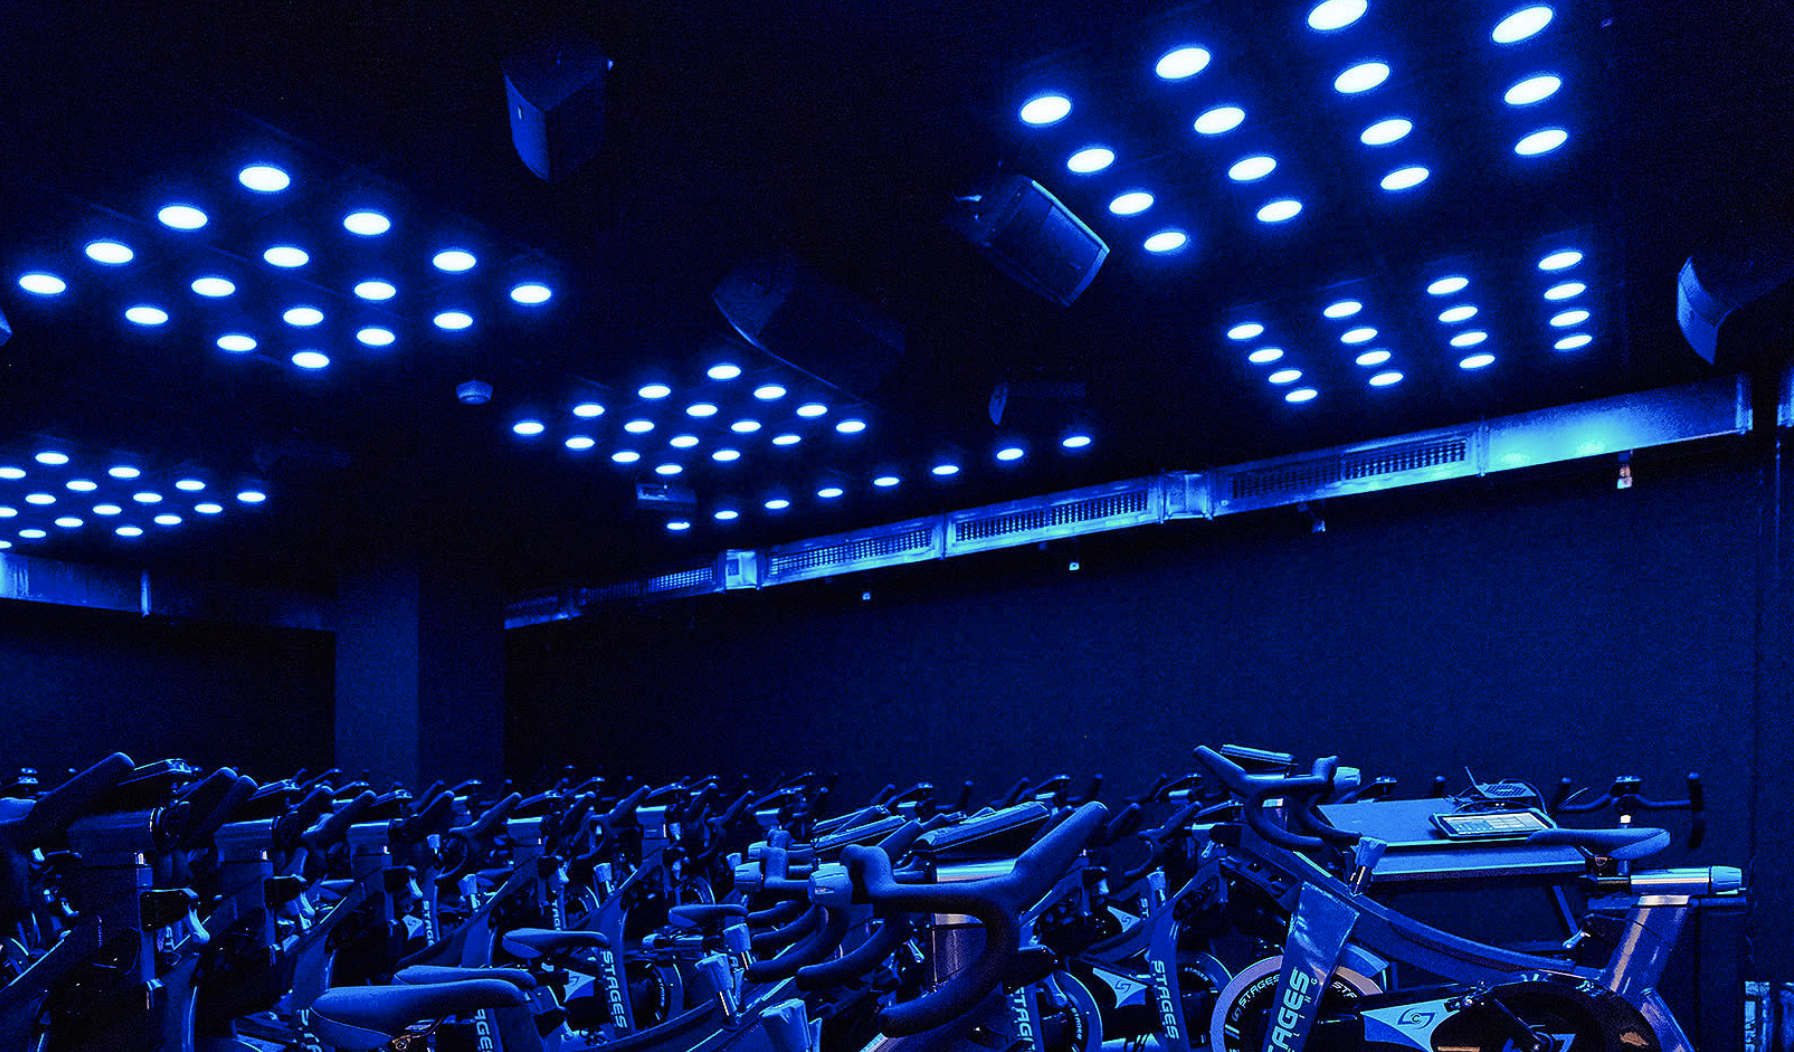 -  Since 2014, I have worked with early adopters to begin studio indoor cycling culture in countries where it did not previously exist.Some of the first group of instructors I trained have gone on to own their own boutique fitness studios in multiple modalities; and it is a joy to watch mentees become mentors.